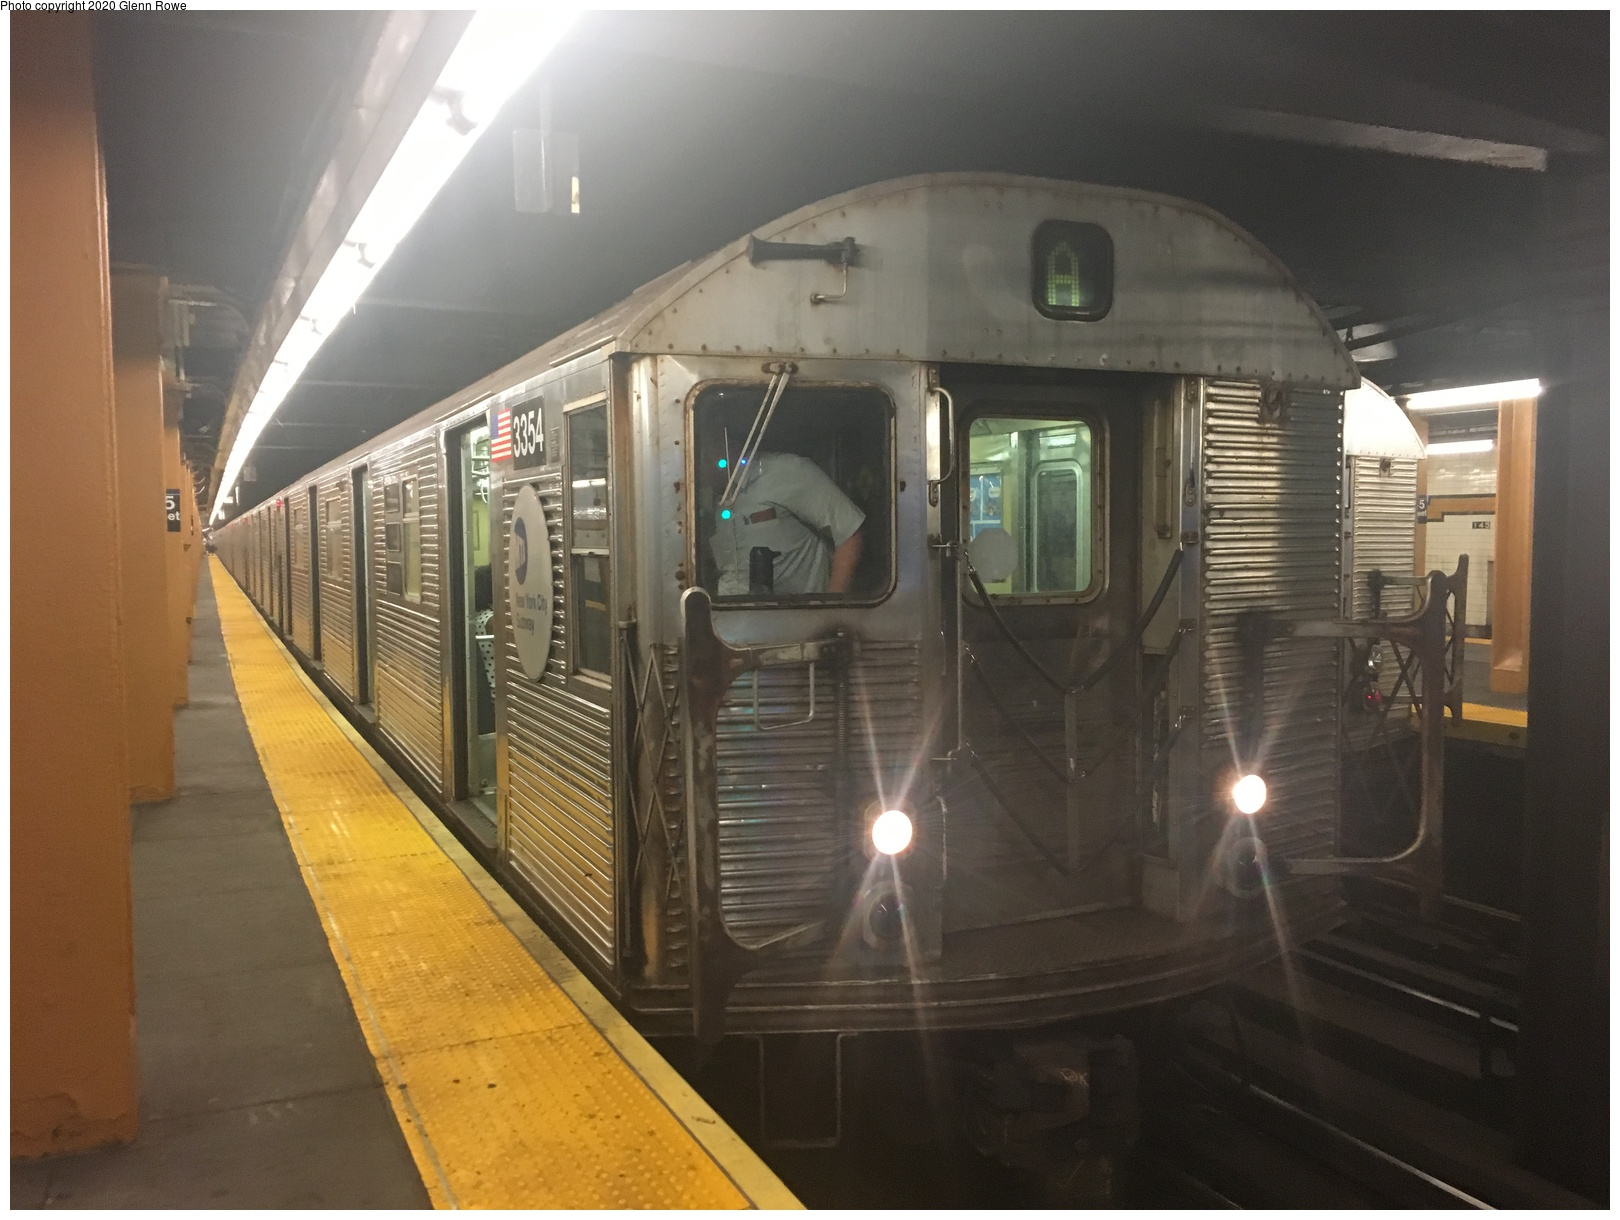 (561k, 1620x1220)<br><b>Country:</b> United States<br><b>City:</b> New York<br><b>System:</b> New York City Transit<br><b>Line:</b> IND 8th Avenue Line<br><b>Location:</b> 145th Street <br><b>Route:</b> C<br><b>Car:</b> R-32 (Budd, 1964)  3354 <br><b>Photo by:</b> Glenn L. Rowe<br><b>Date:</b> 8/23/2019<br><b>Viewed (this week/total):</b> 19 / 68